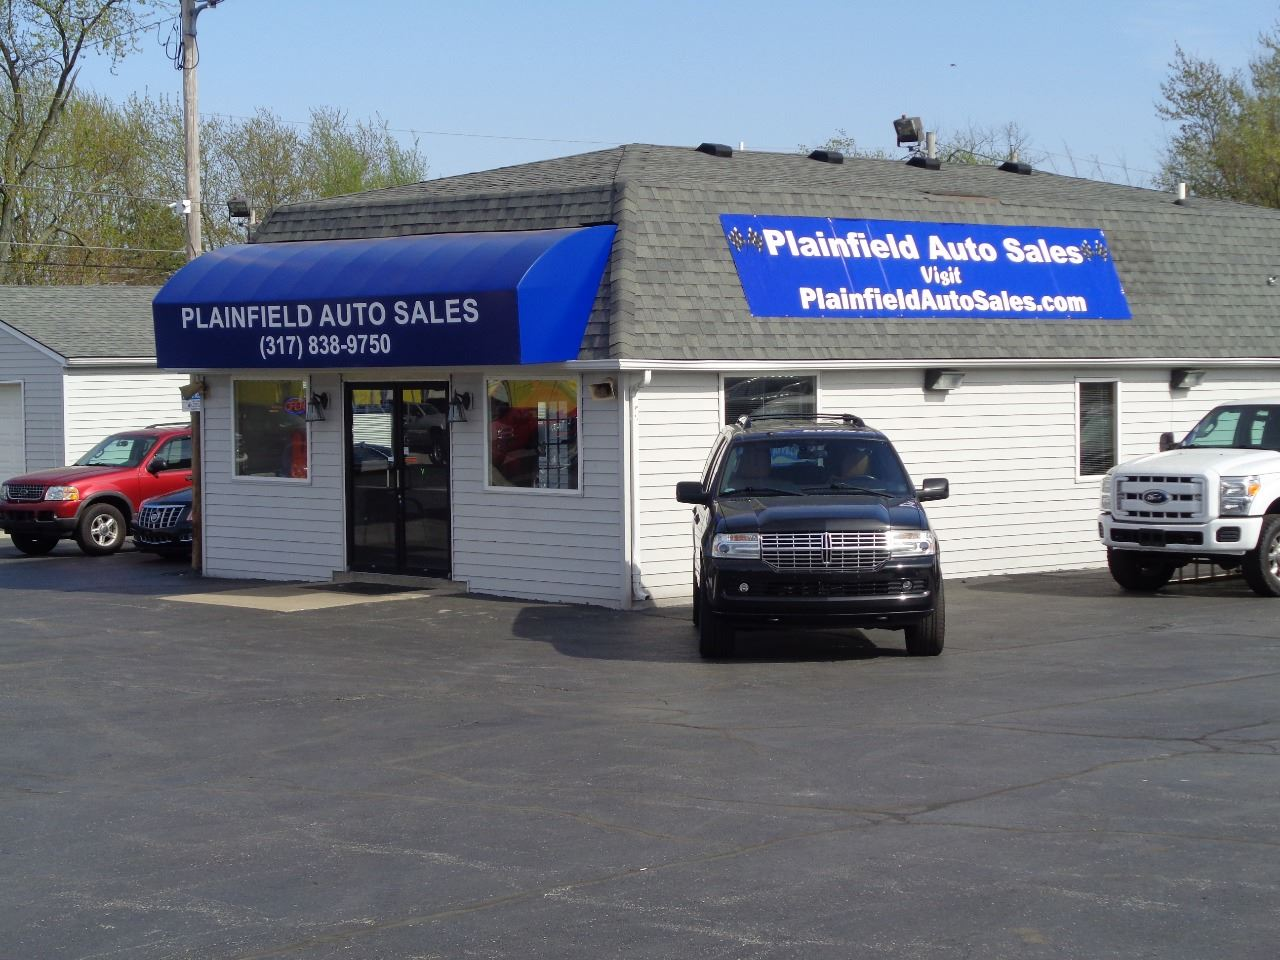 Plainfield Auto Sales